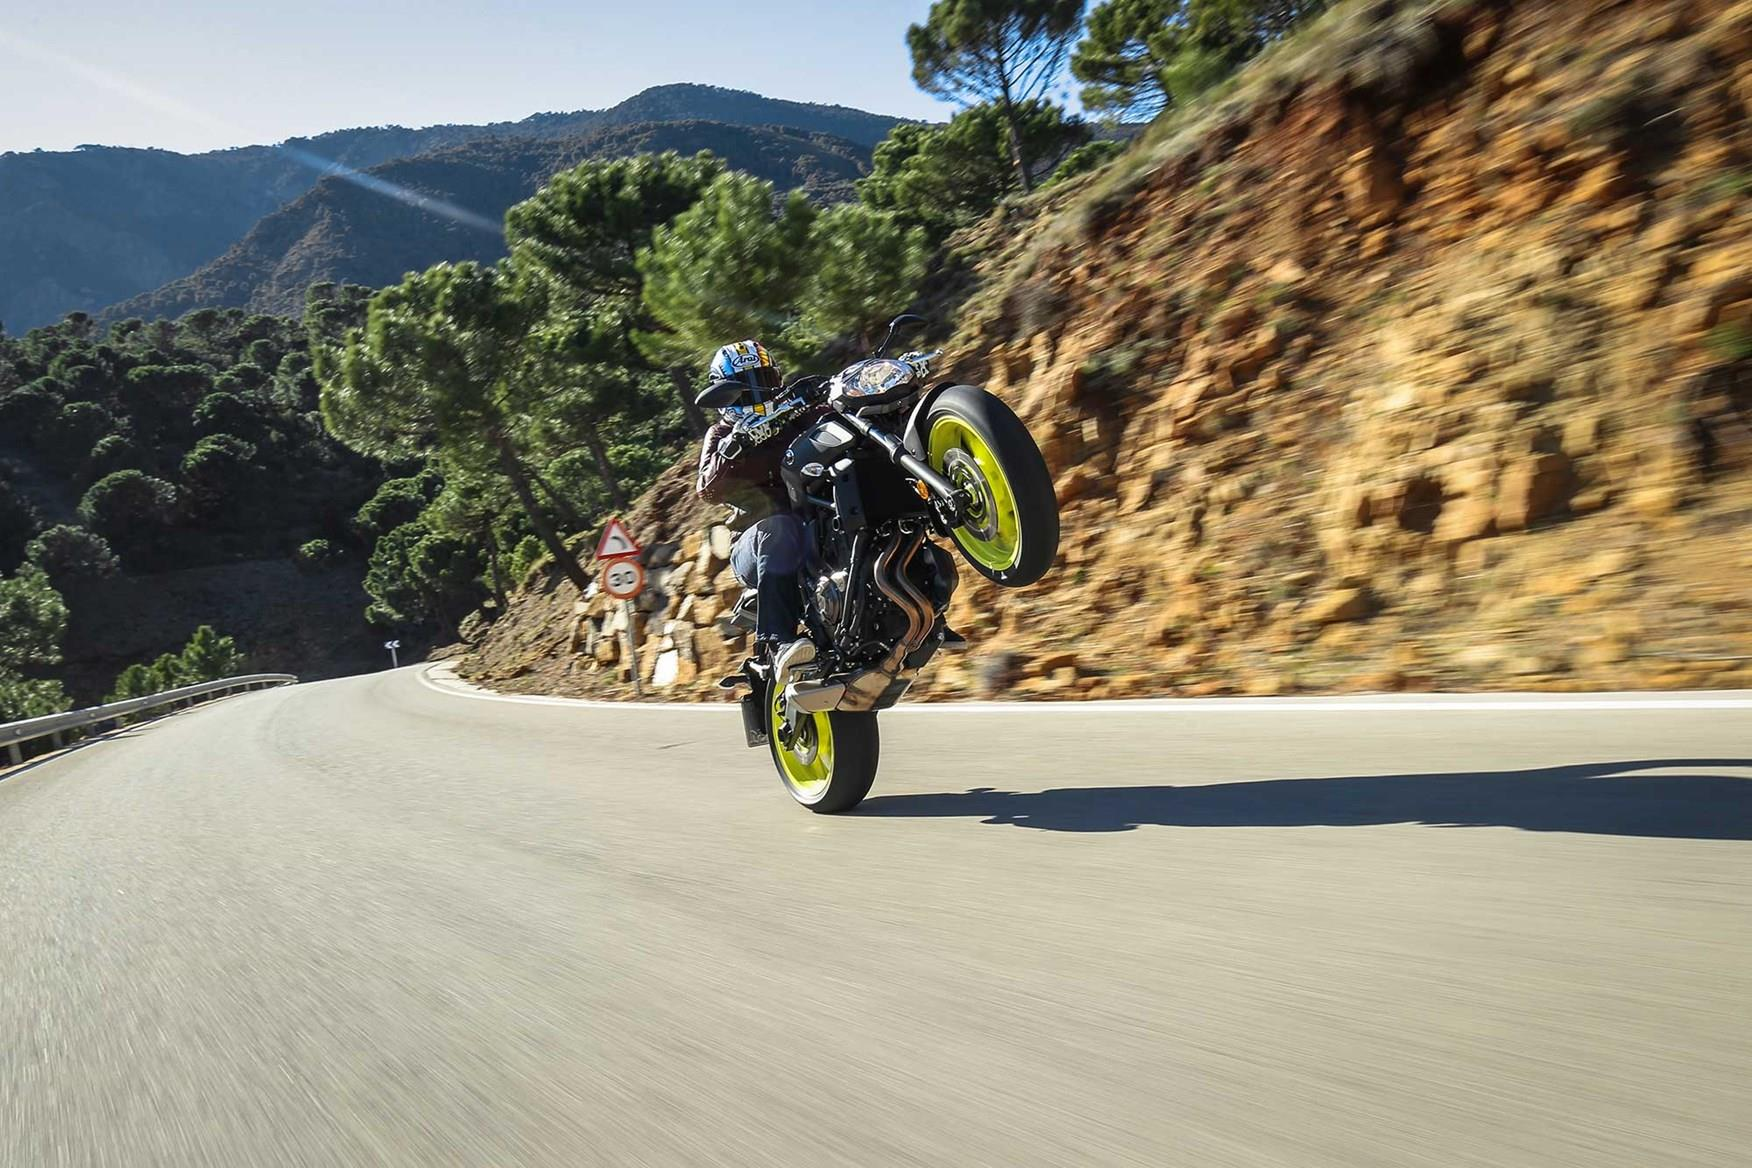 The Yamaha MT-07 is huge fun